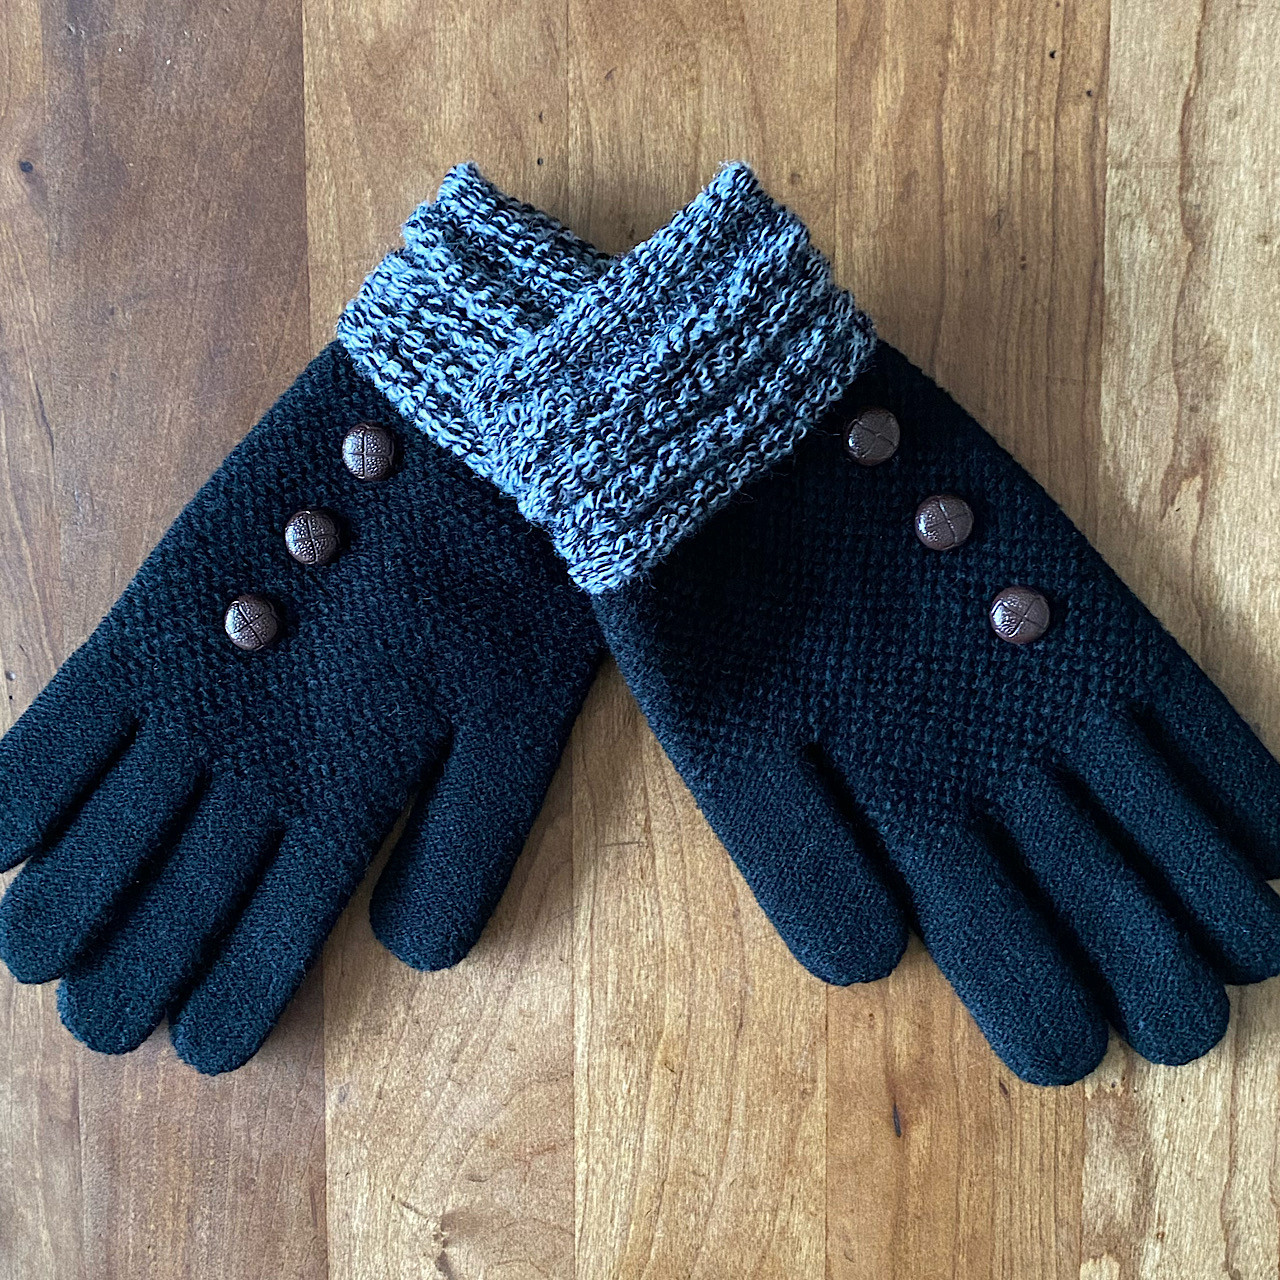 Britt's Knits Soft Gloves in Assorted Colors